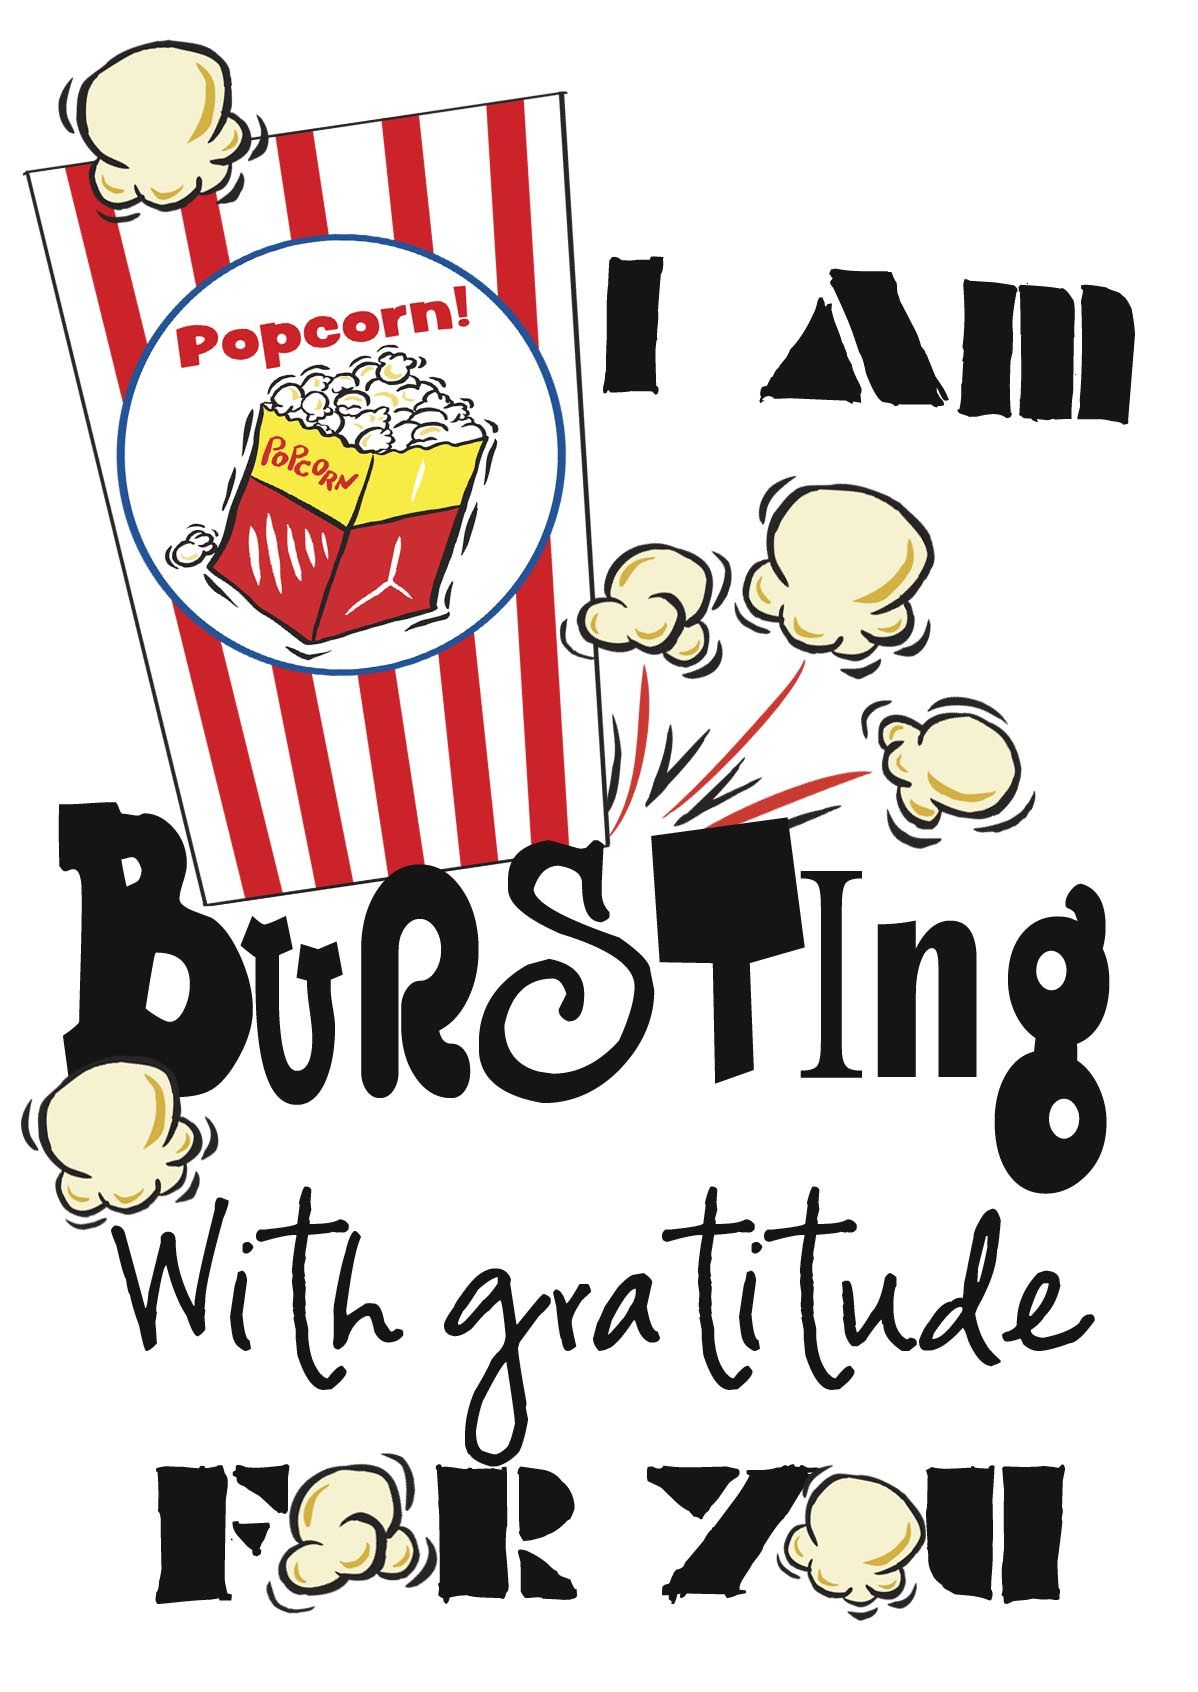 graphic regarding Popcorn Teacher Appreciation Printable named Pin by means of Amy Knight upon Craft Options Personnel appreciation